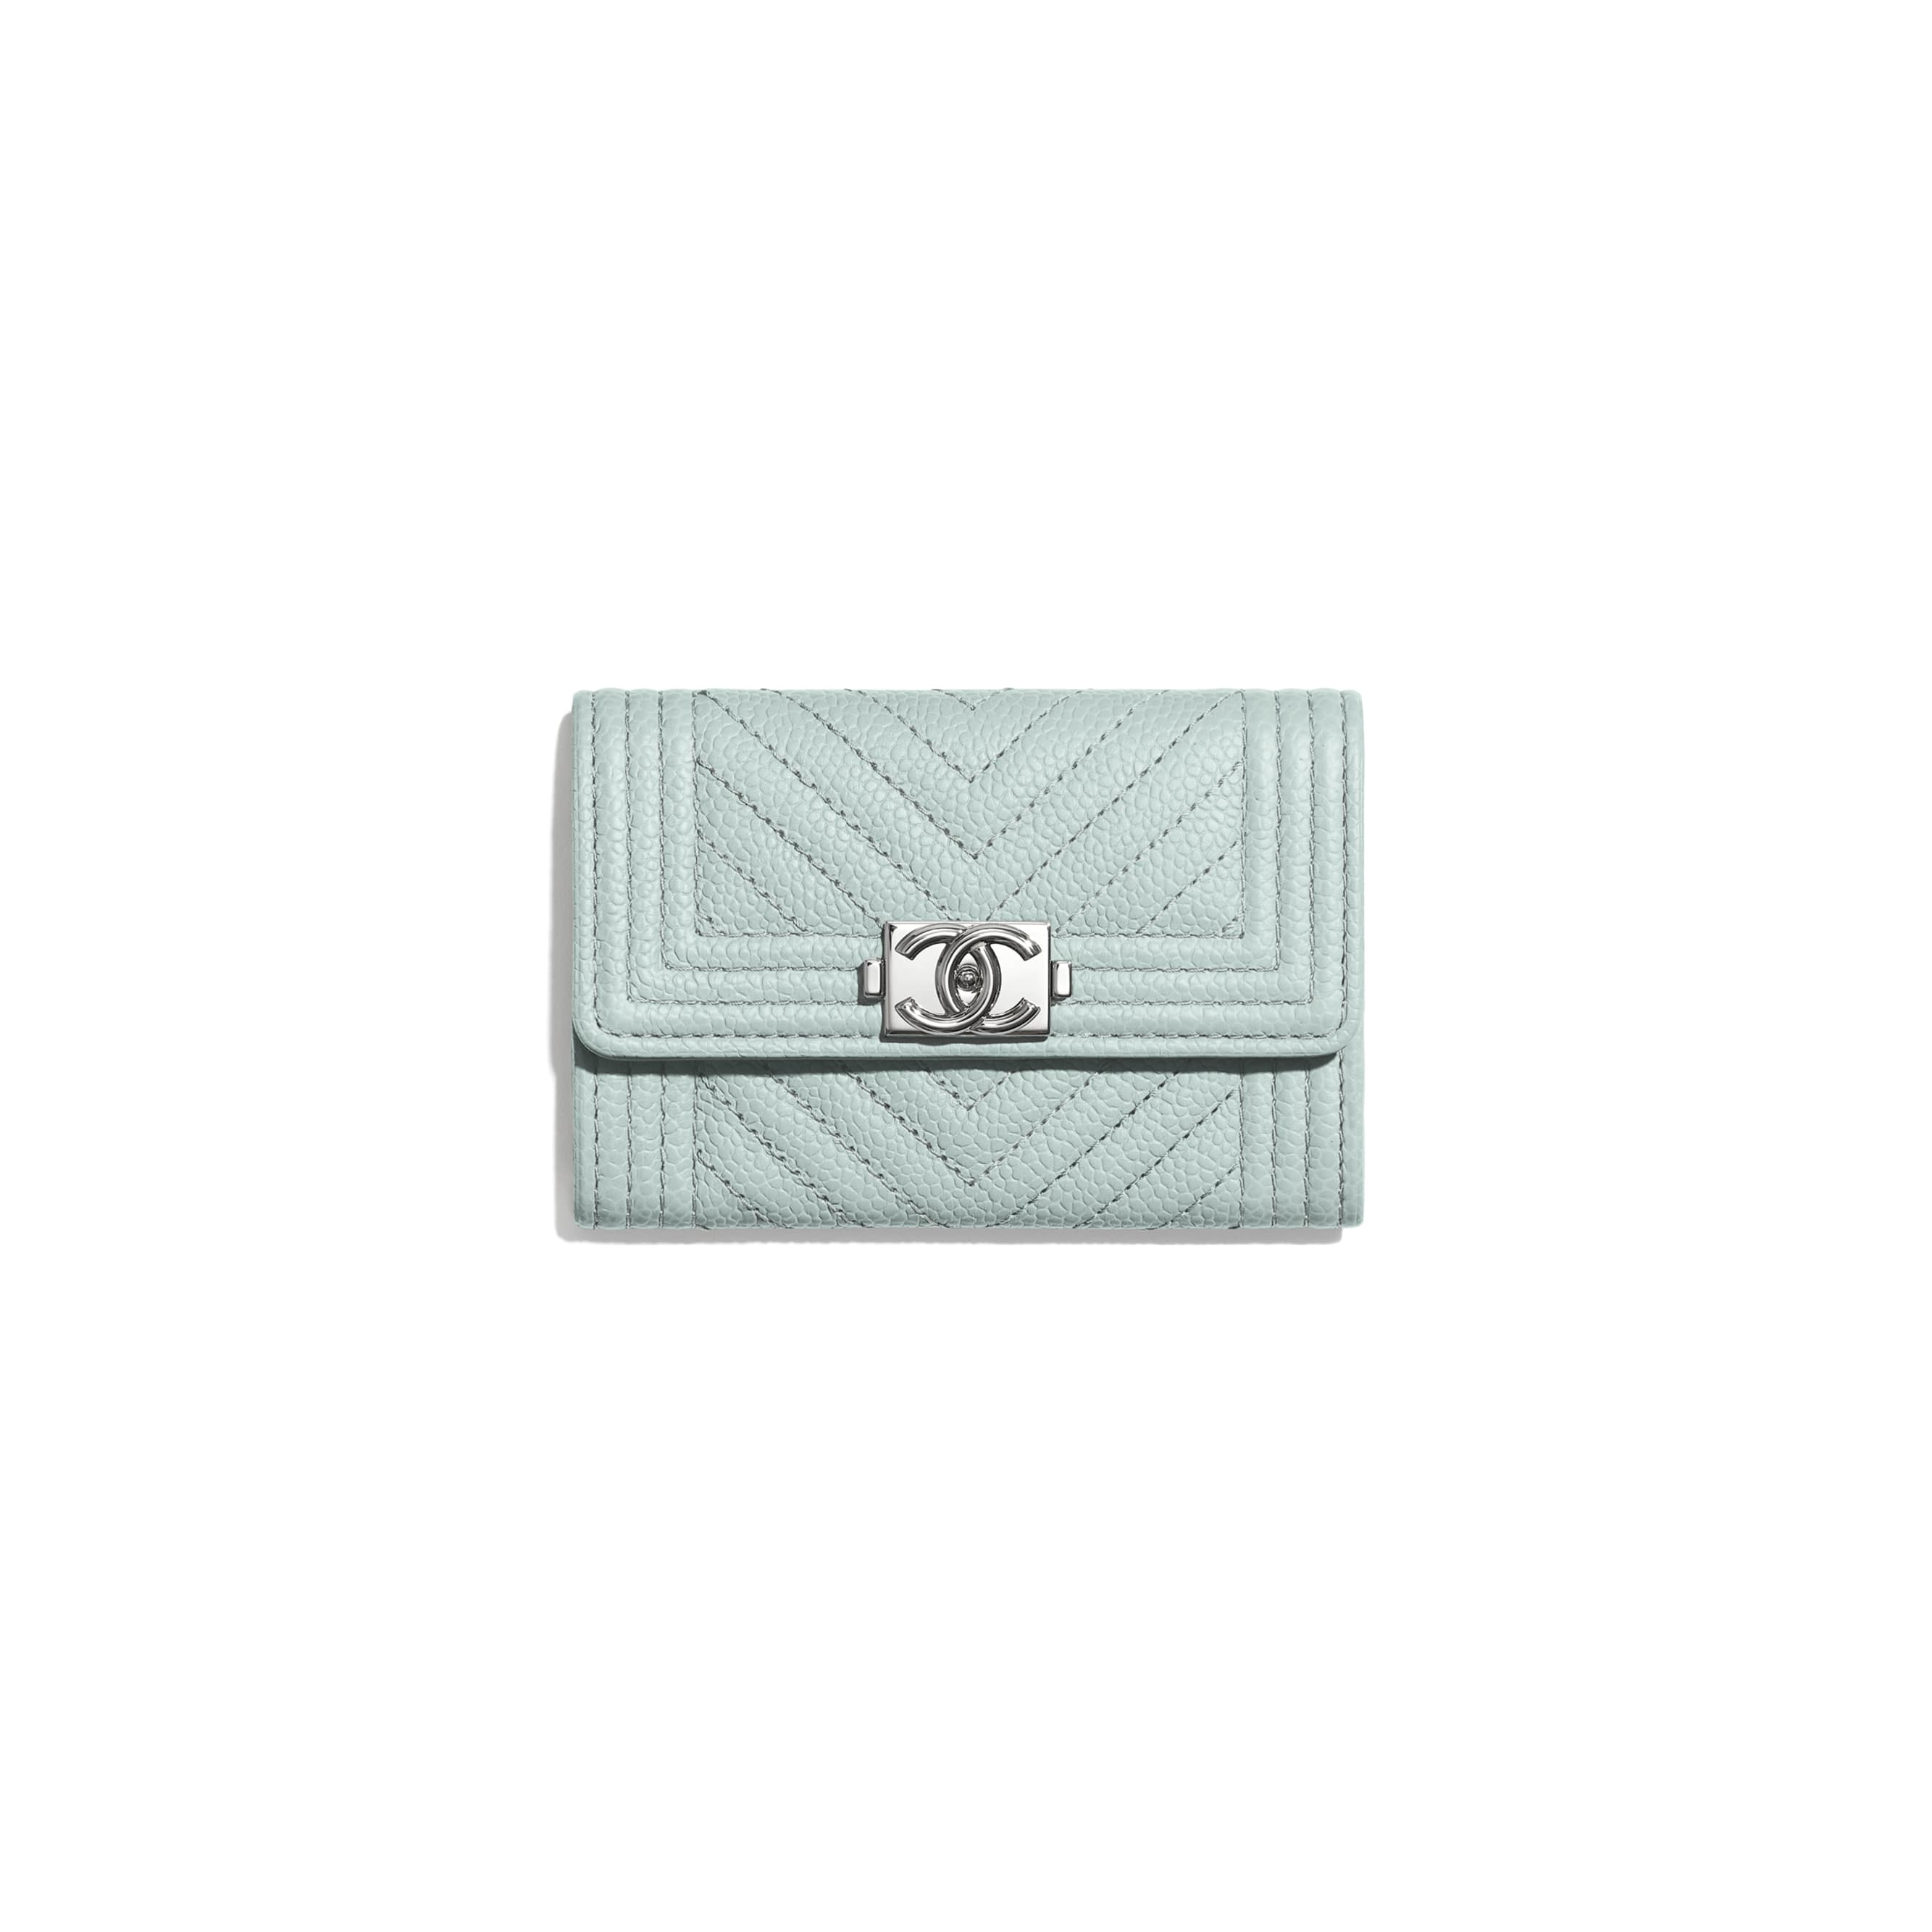 BOY CHANEL Flap Card Holder - Light Blue - Shiny Grained Calfskin & Silver-Tone Metal - Default view - see standard sized version